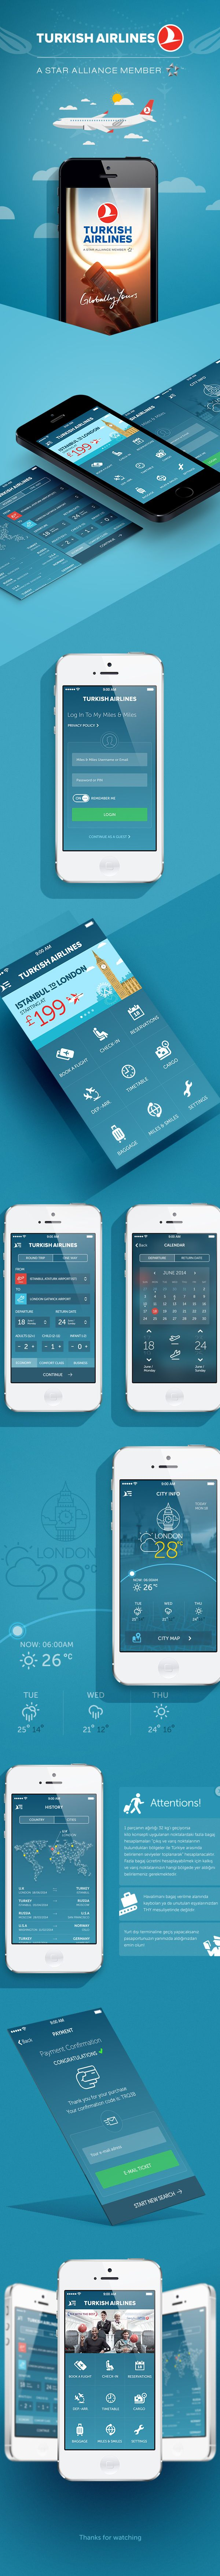 Turkish Airlines App Redesign Concept on Behance